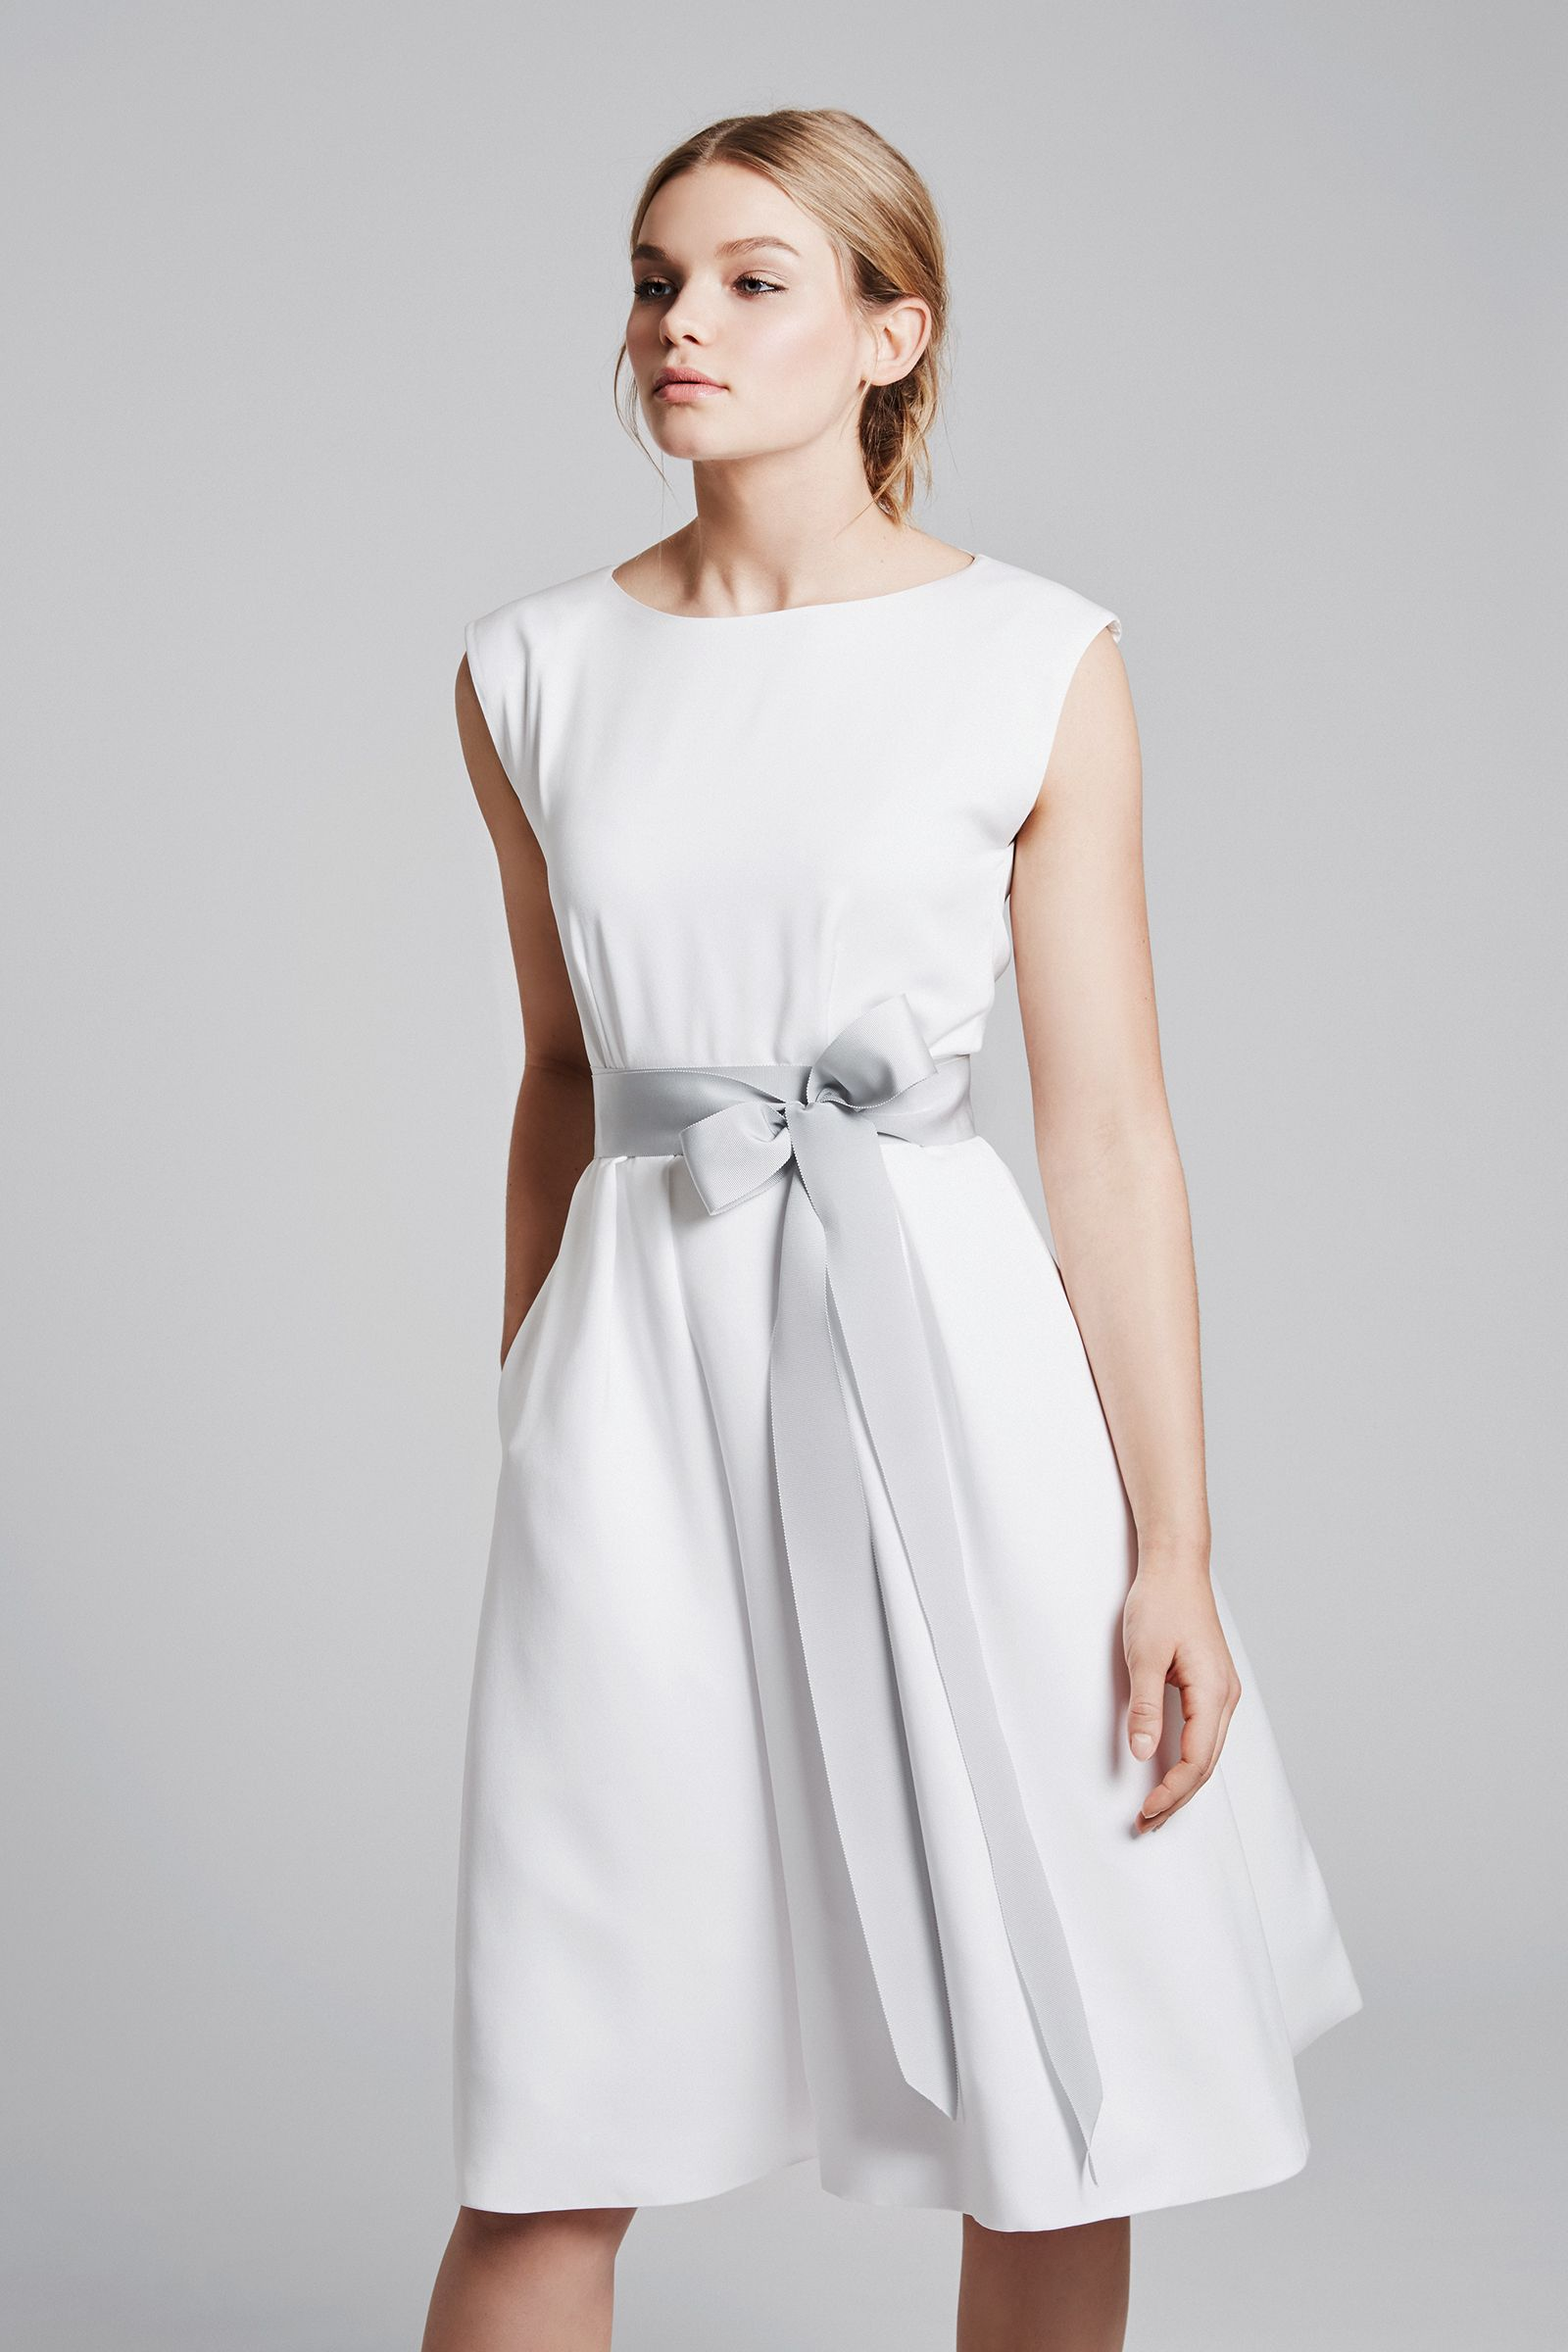 Shop bridal separates - mix & match your perfect wedding dress - bow ...